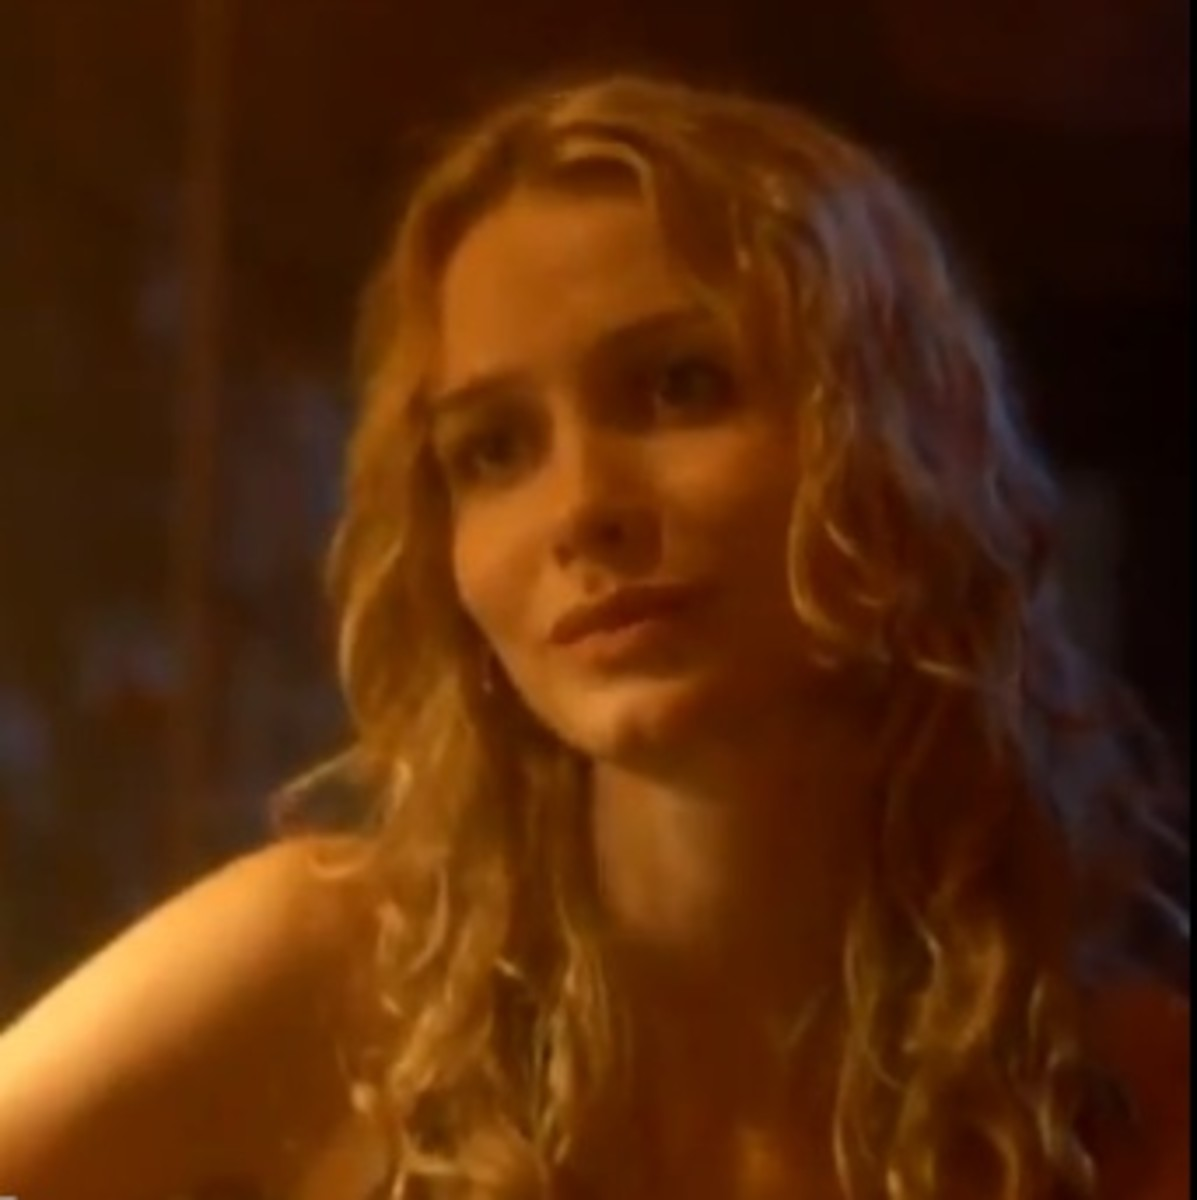 Hot Blonde Saffron Burrows in Tempted as Mrs. Lily LeBlanc